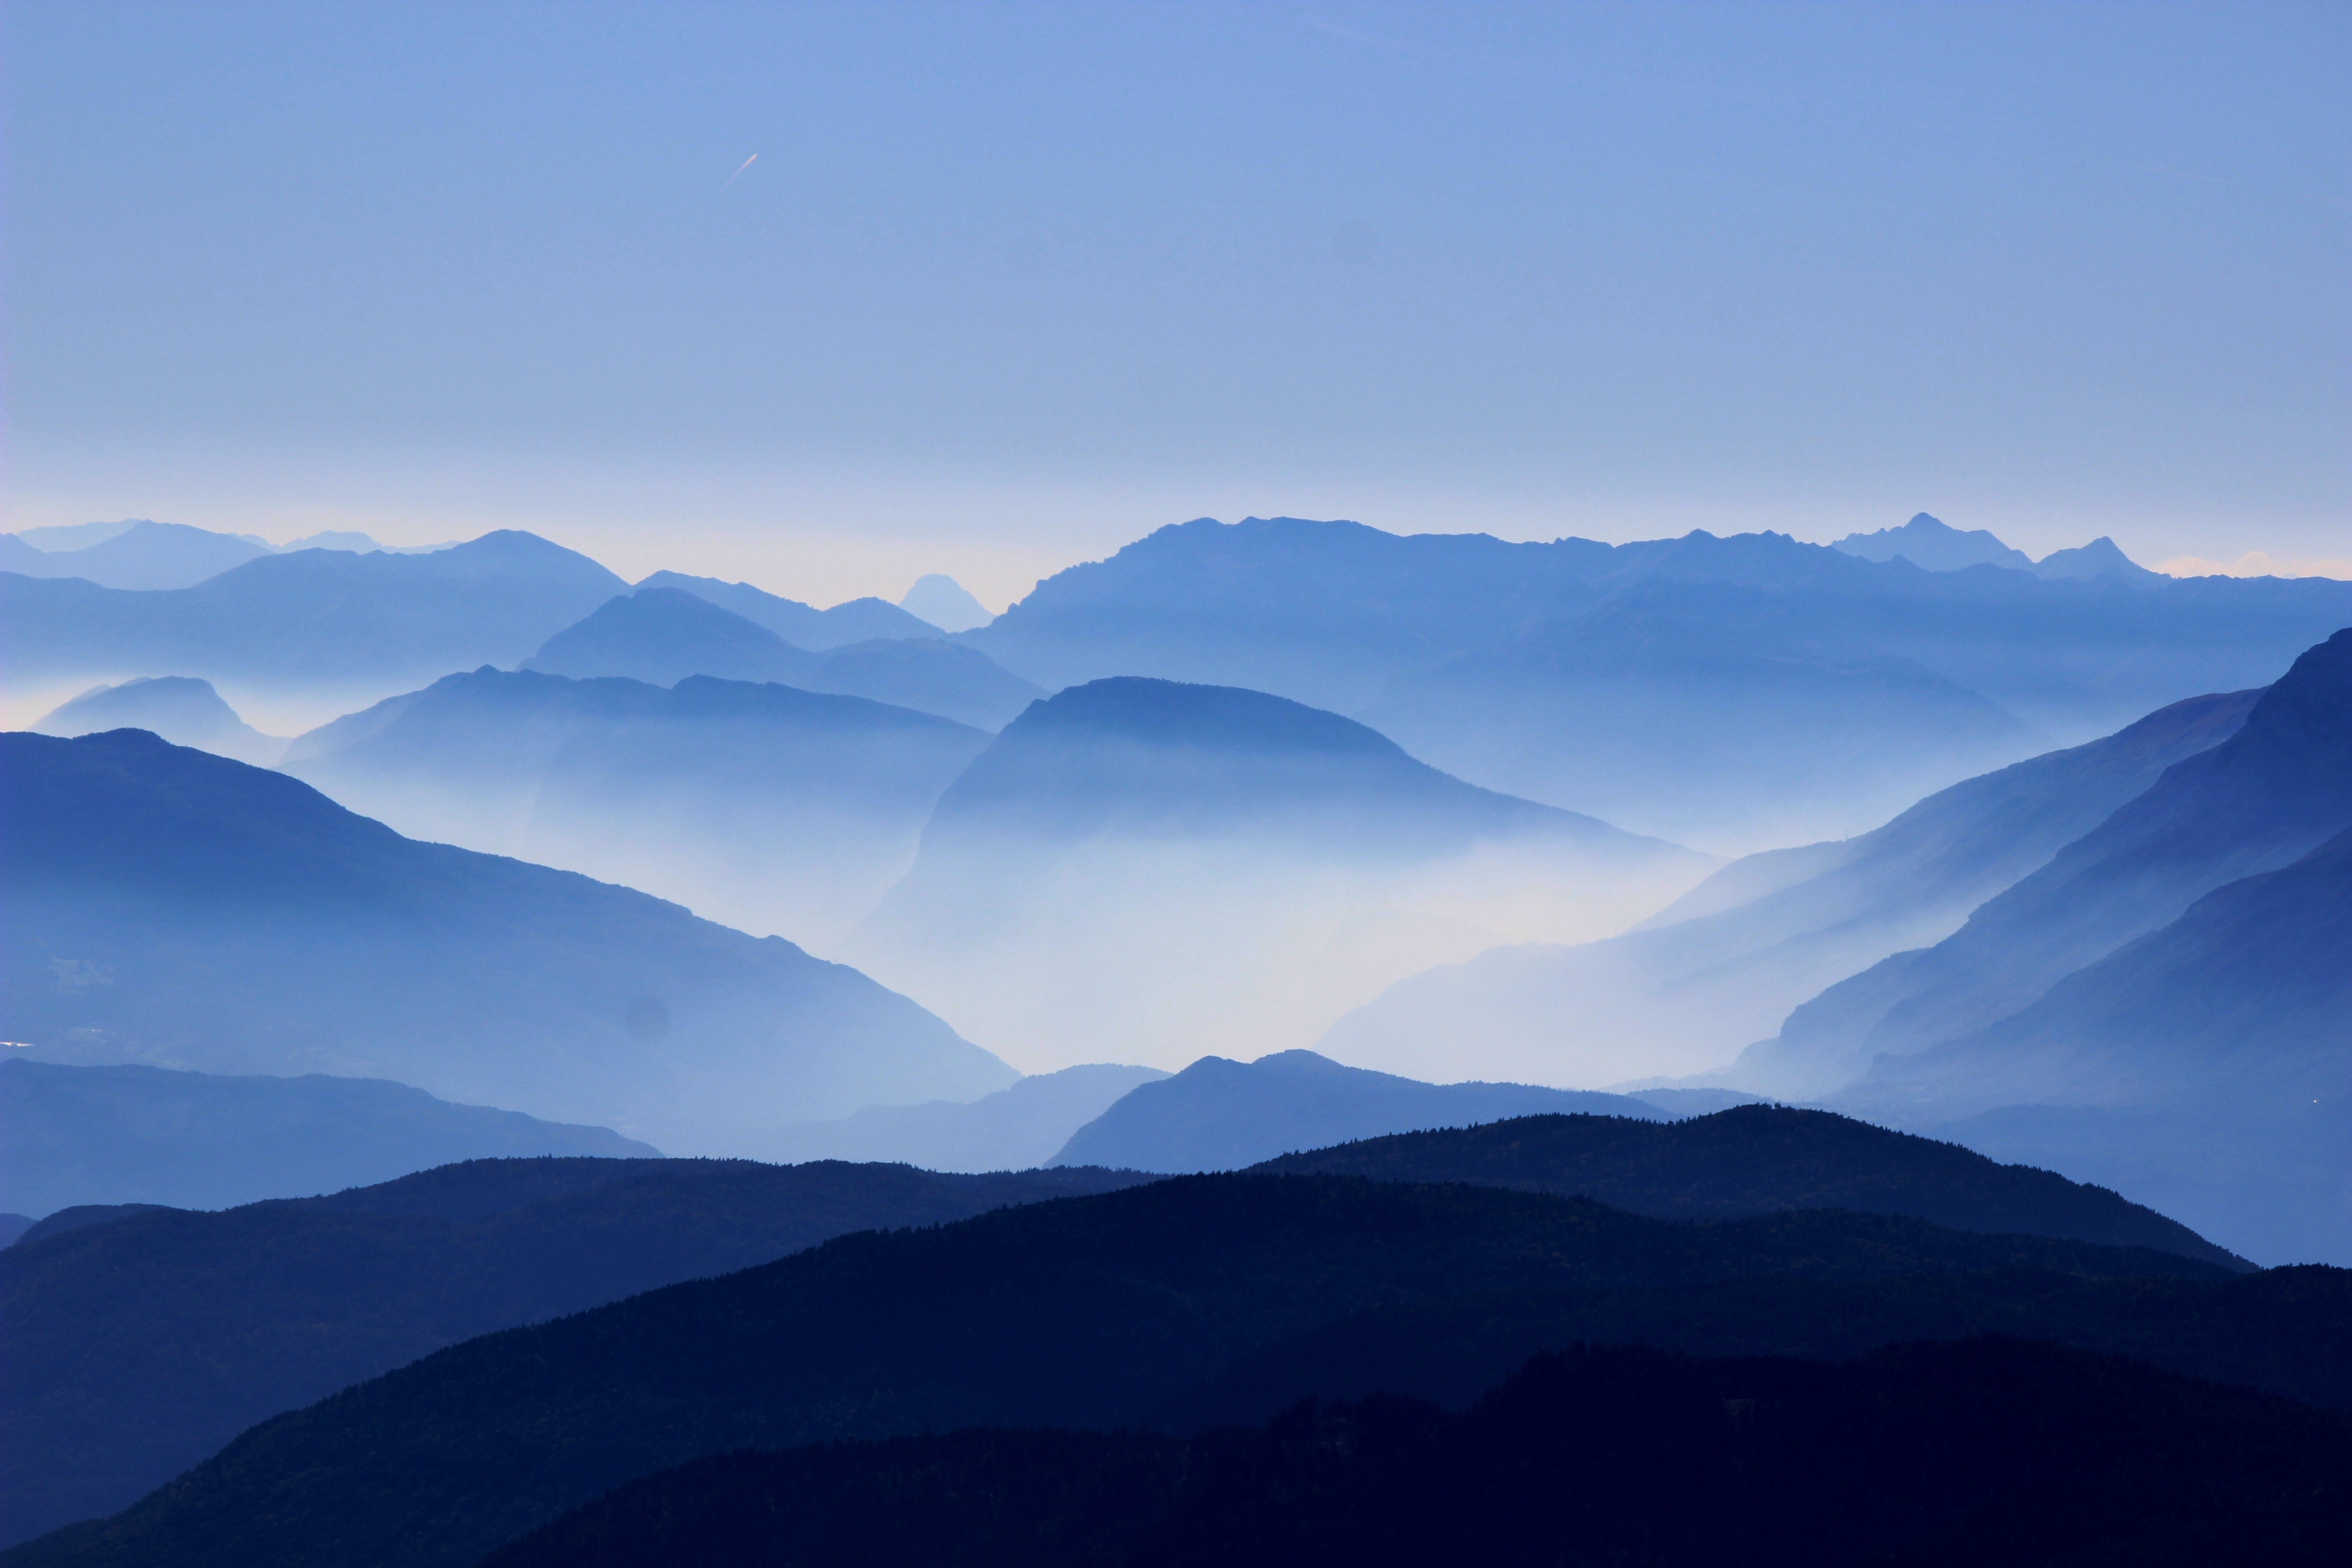 wallpaper Landscape photo of mountains with fog